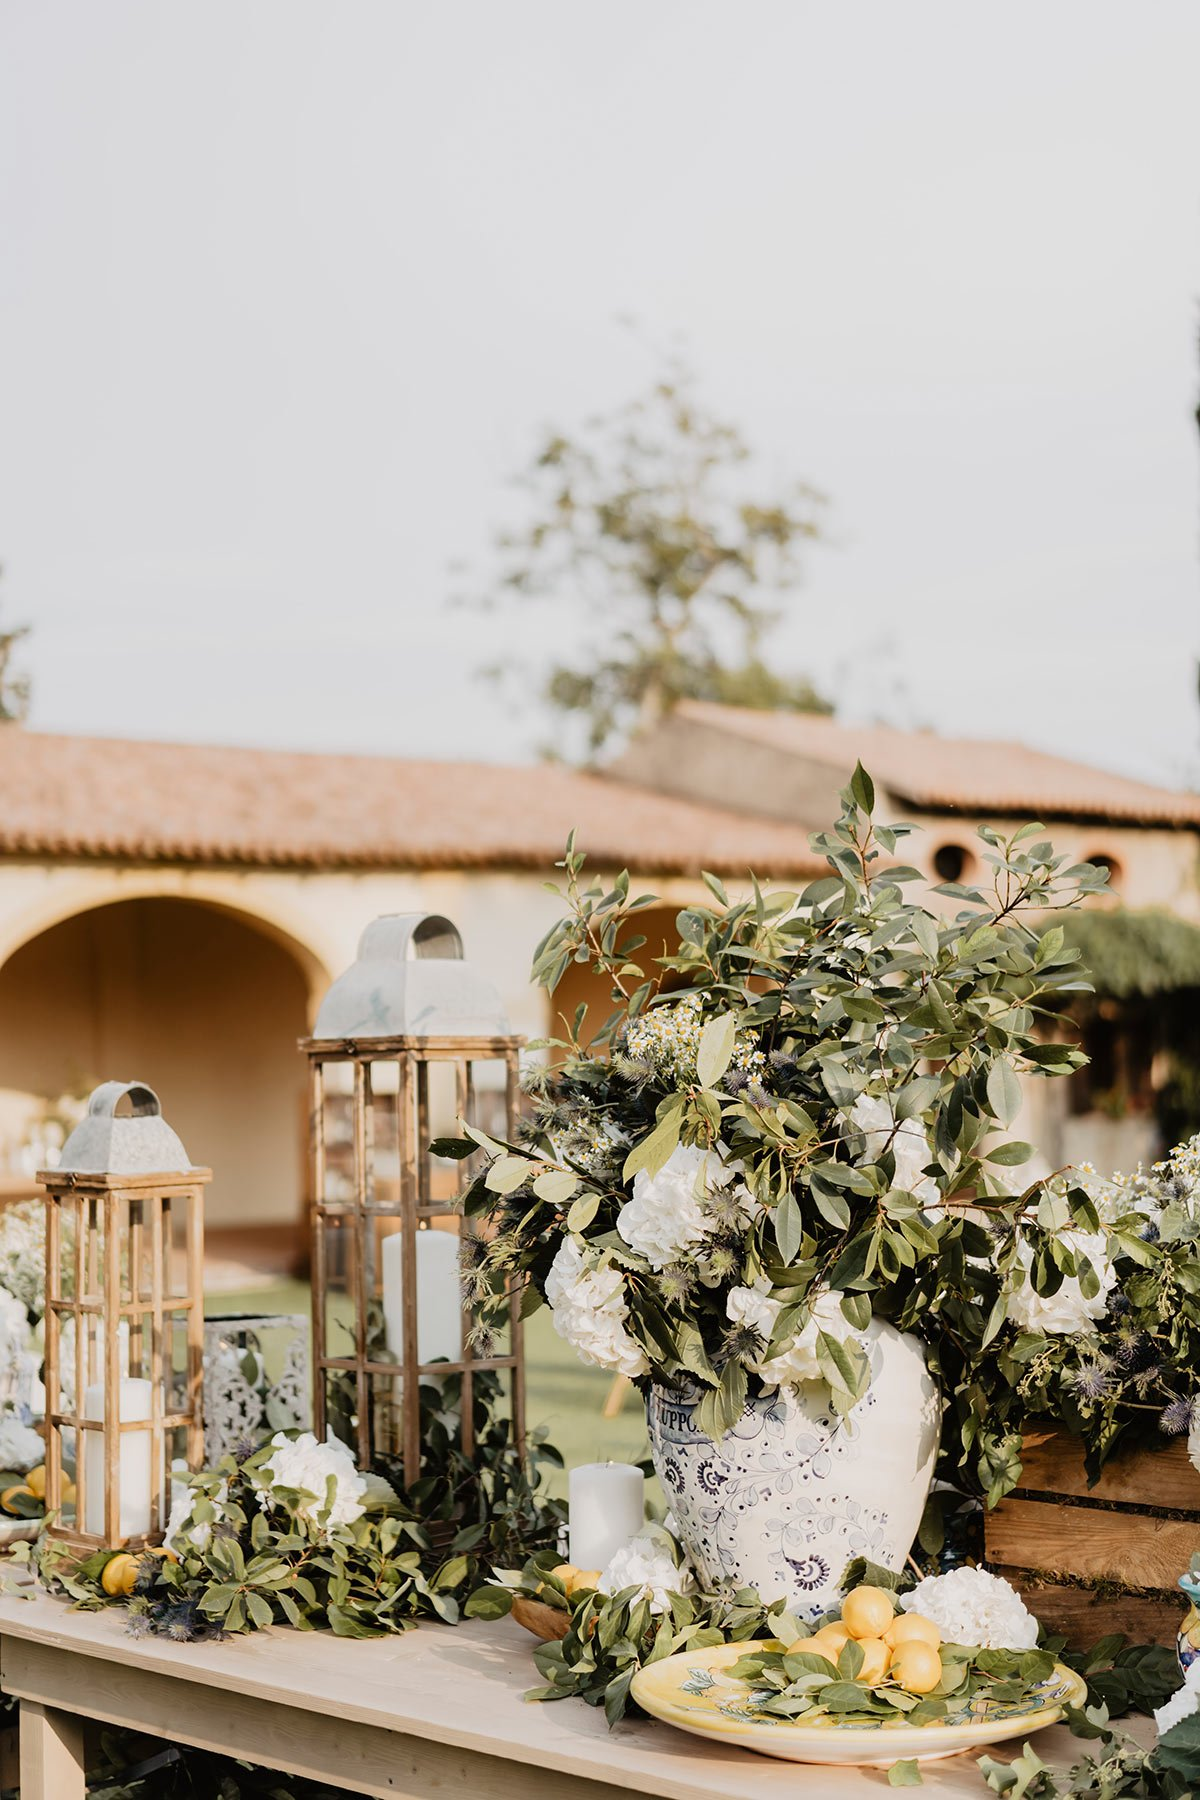 Ranya and Tarek, rehearsal dinner in Italy, design